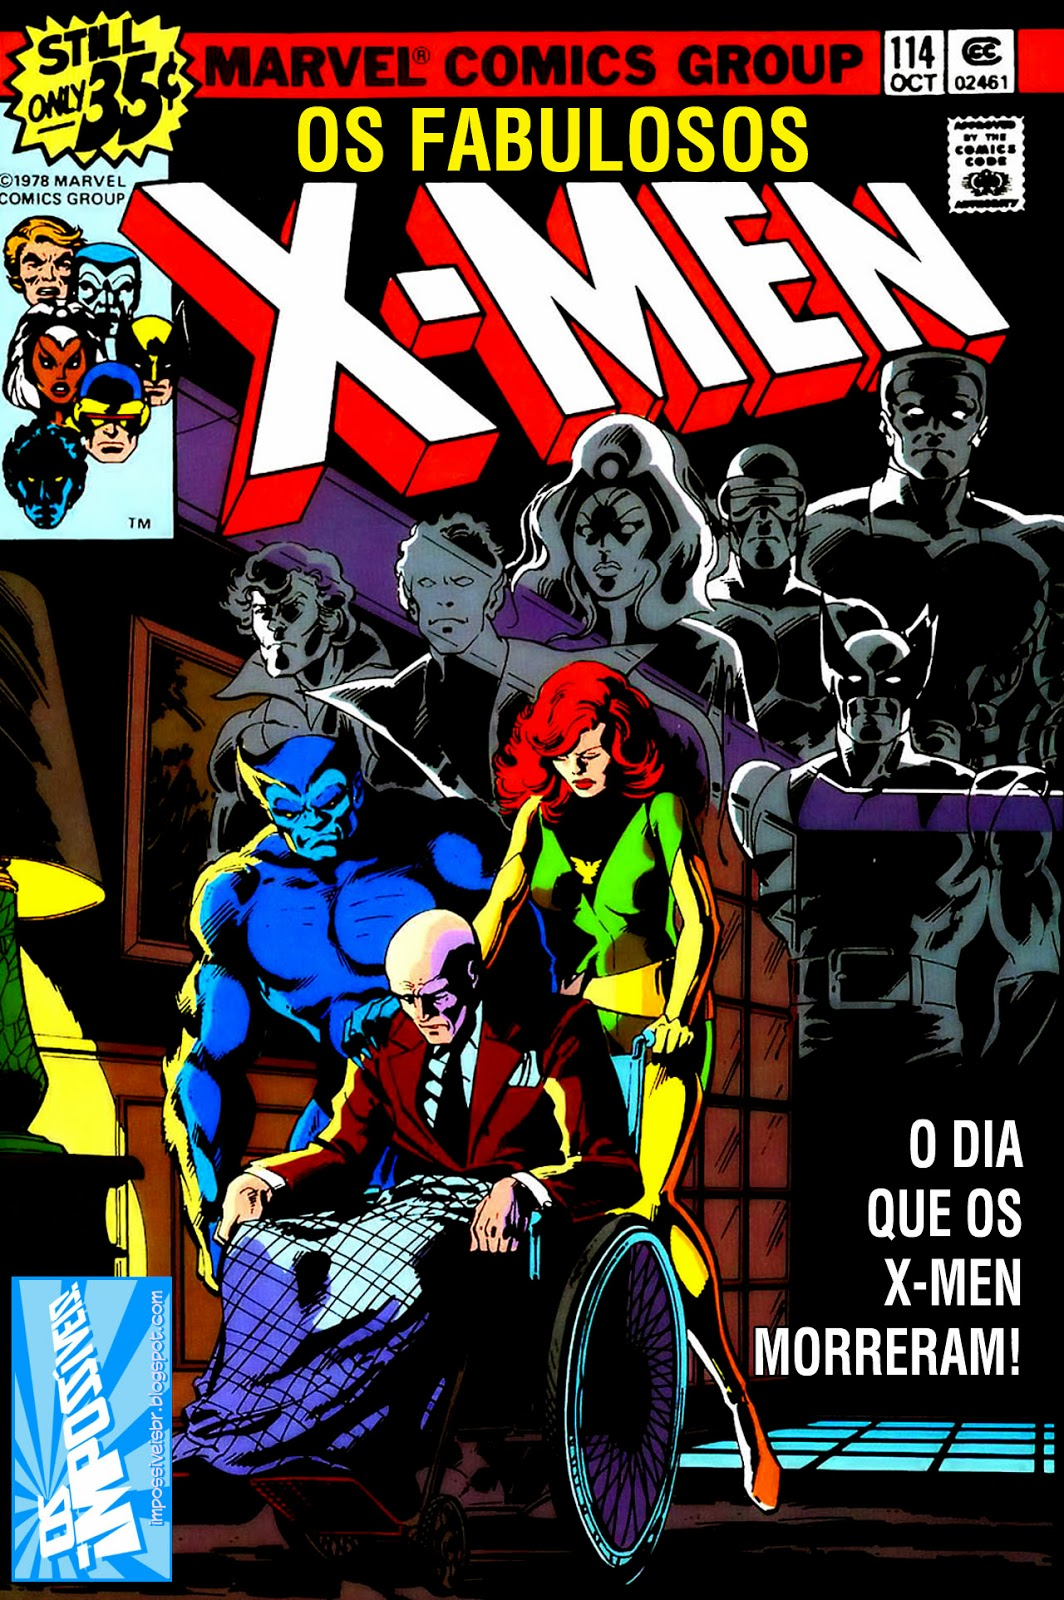 http://www.mediafire.com/download/jv56d91v9pa194g/Os.Fabulosos.X-Men.(X-Men.V1).114.HQBR.28OUT13.Os.Impossiveis.cbr